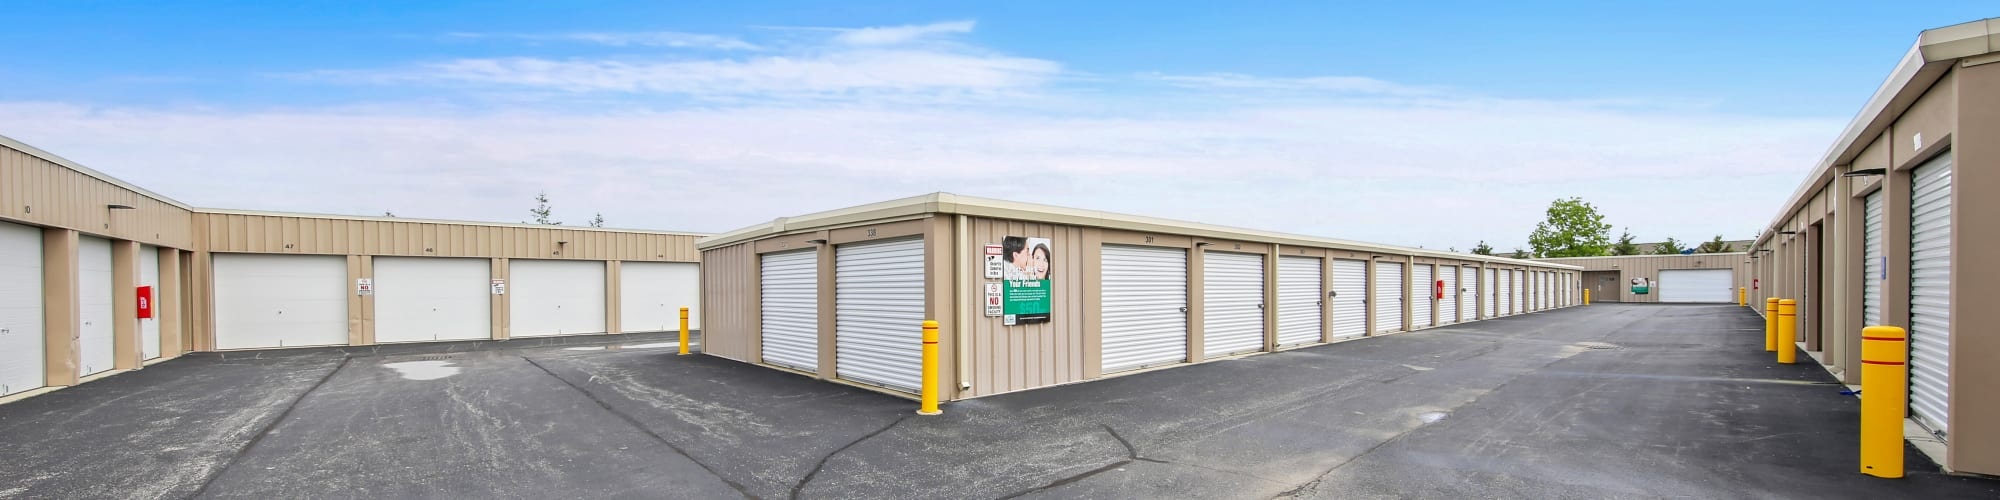 Reviews for Global Self Storage in McCordsville, Indiana